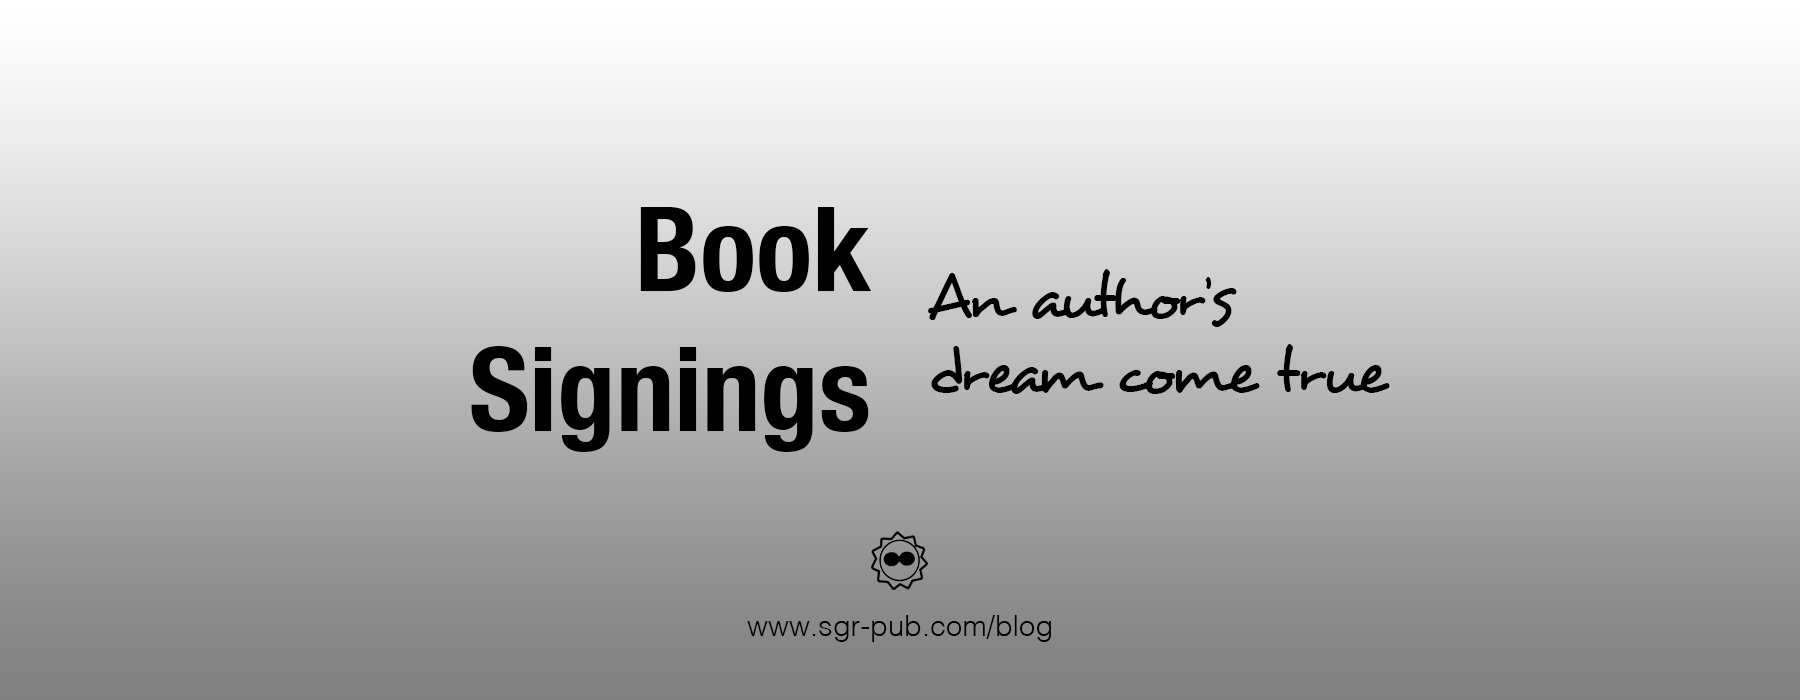 Book signings - An author's dream come true